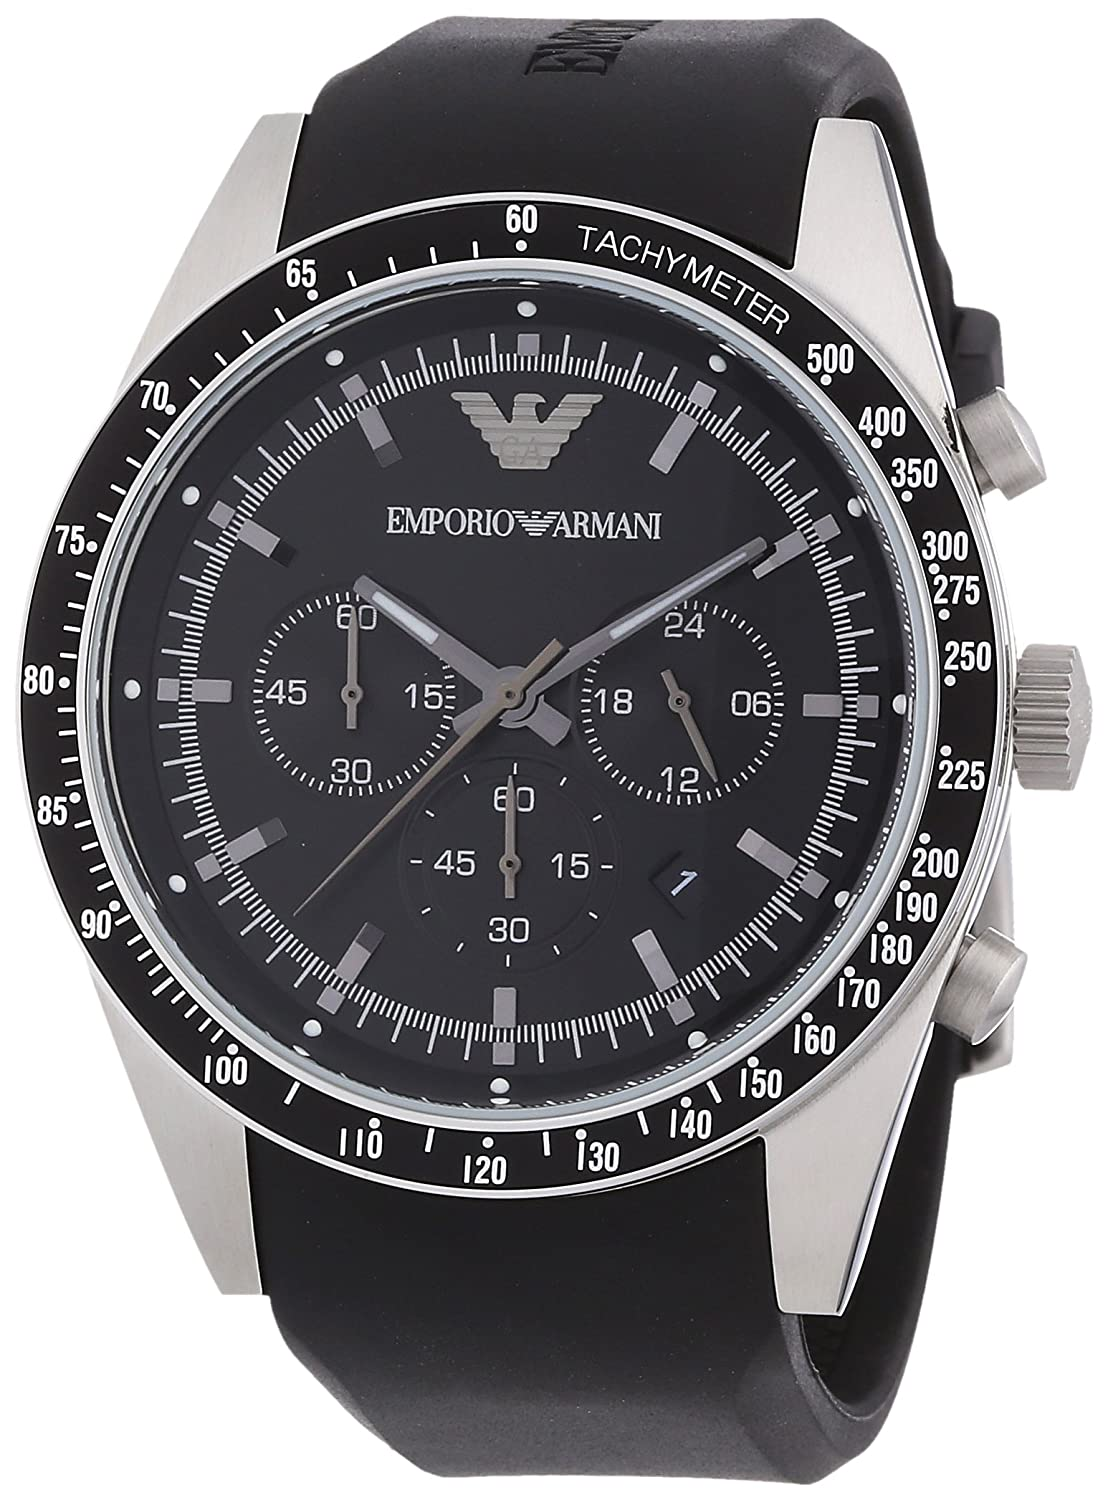 6e4ce1eced Emporio Armani AR5985 Sport Black Chronograph Watch: Amazon.ca: Watches